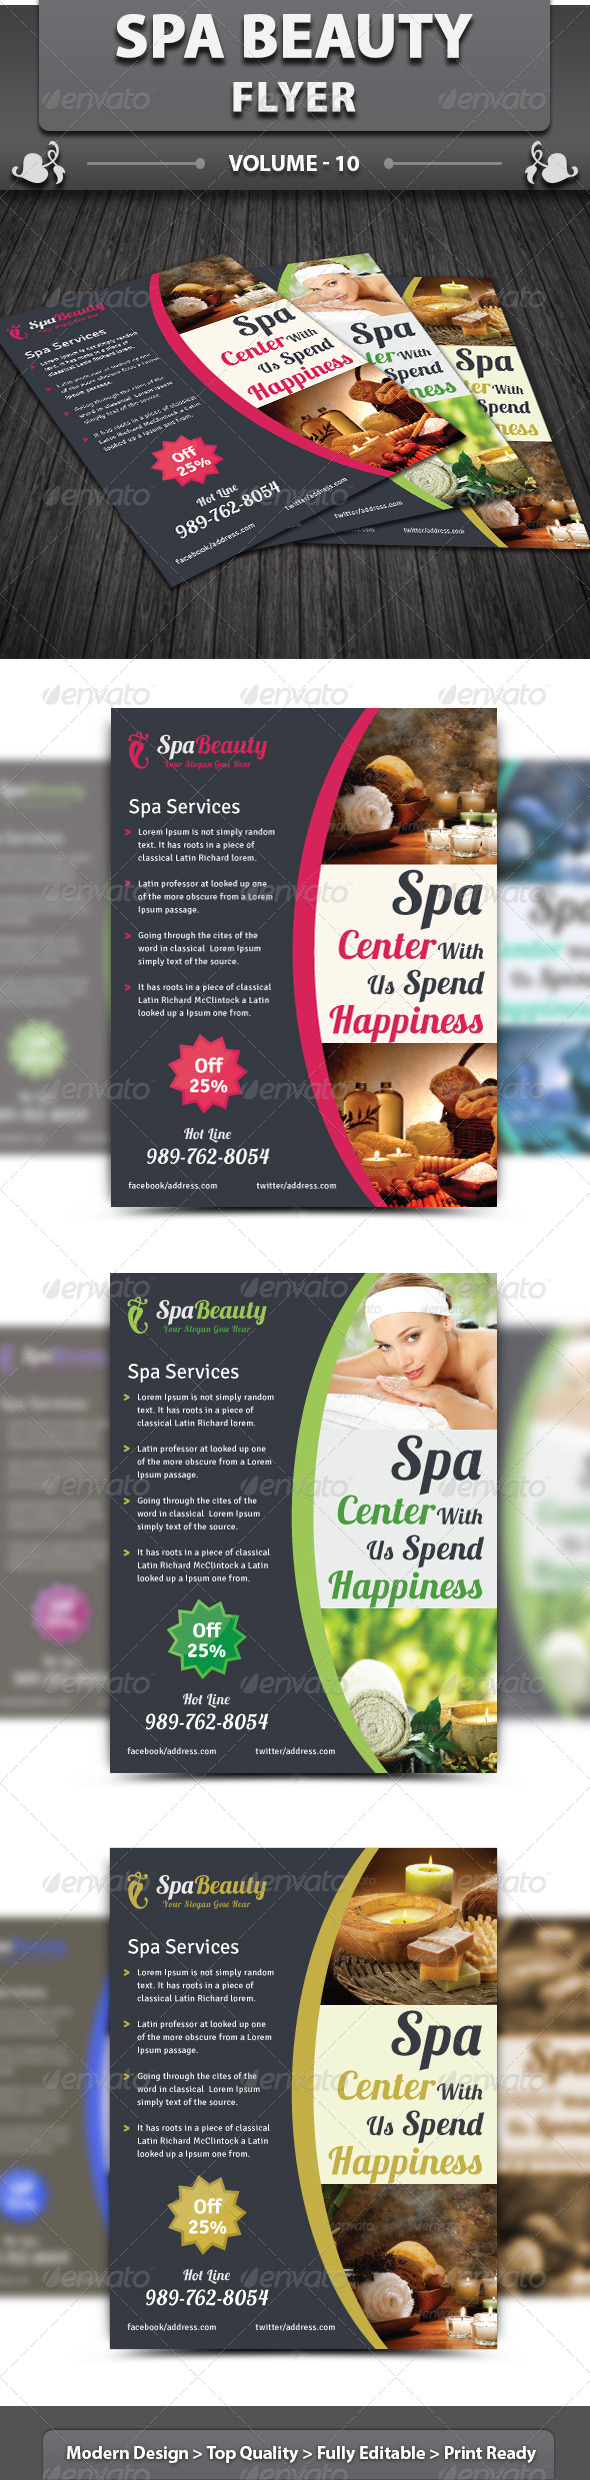 GraphicRiver Spa Beauty Flyer v10 5896720